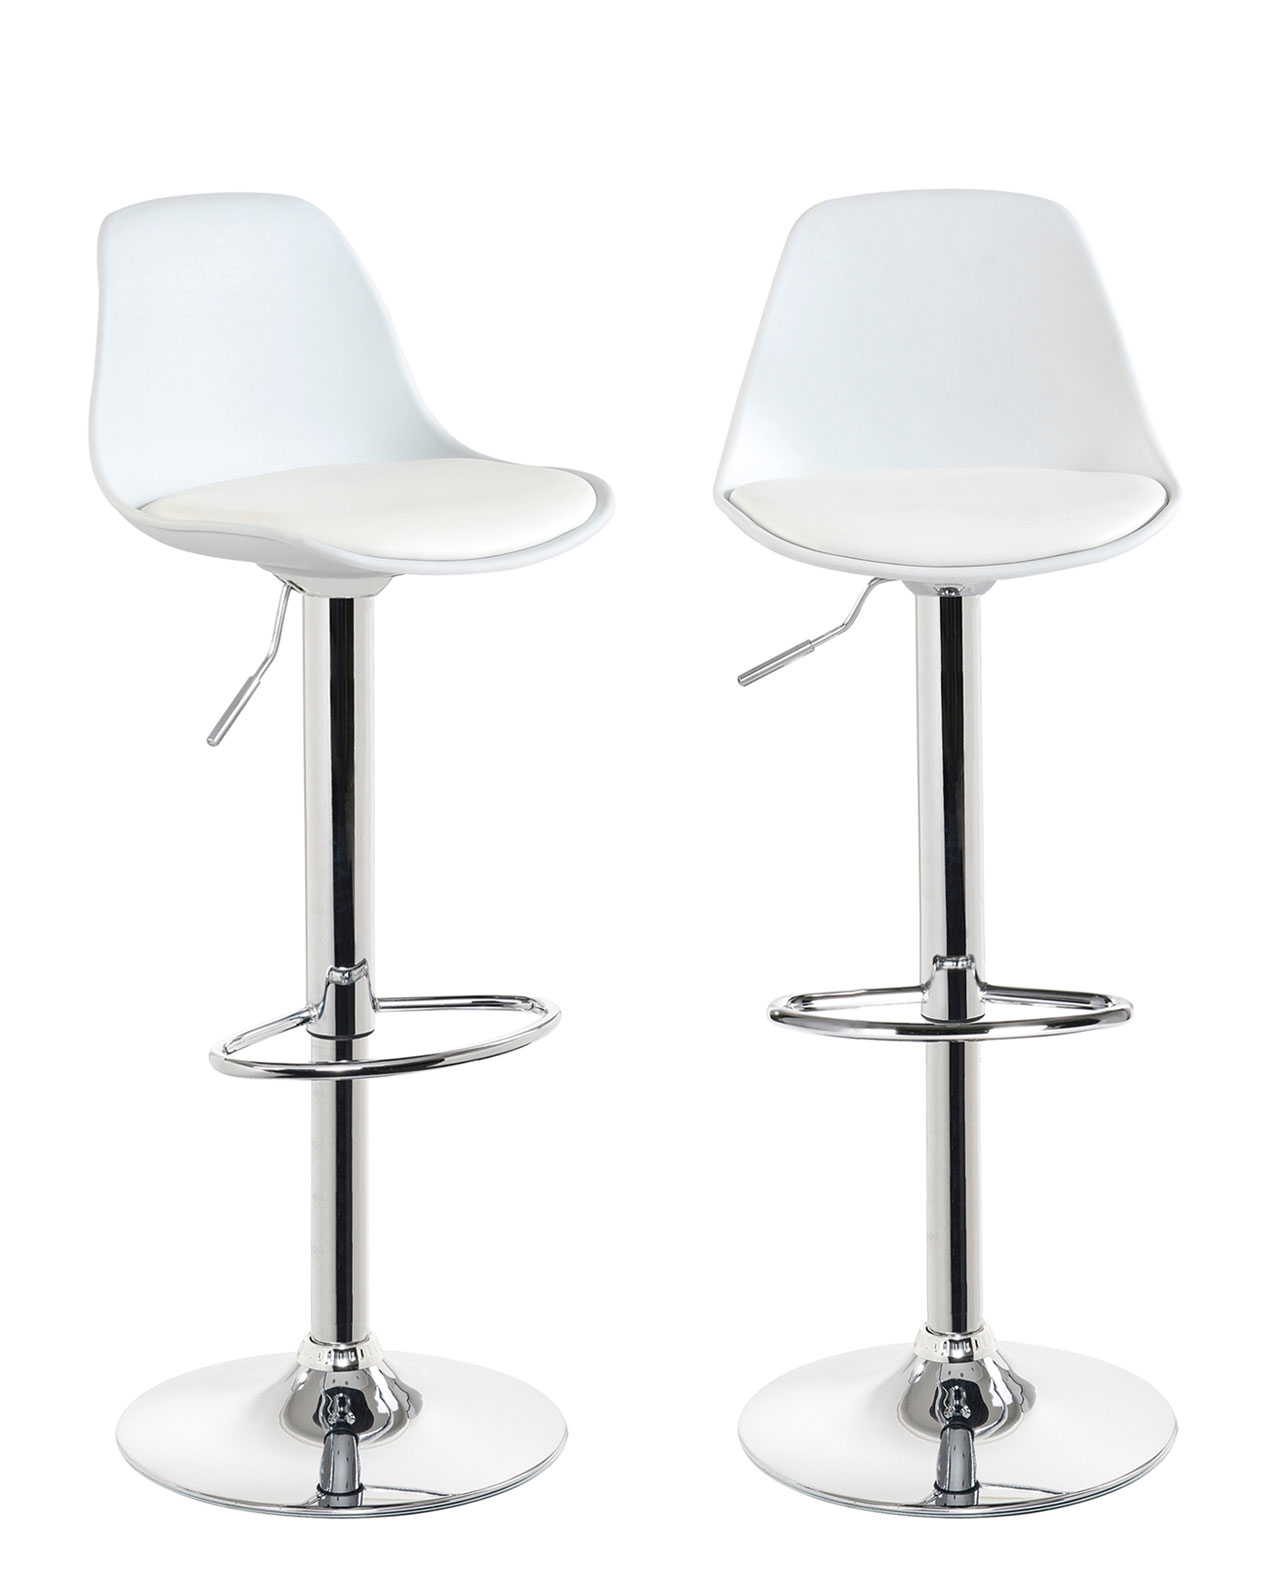 Tabourets De Bar Rose Tabouret De Bar Design Blanc Best Tabouret De Bar En Bois